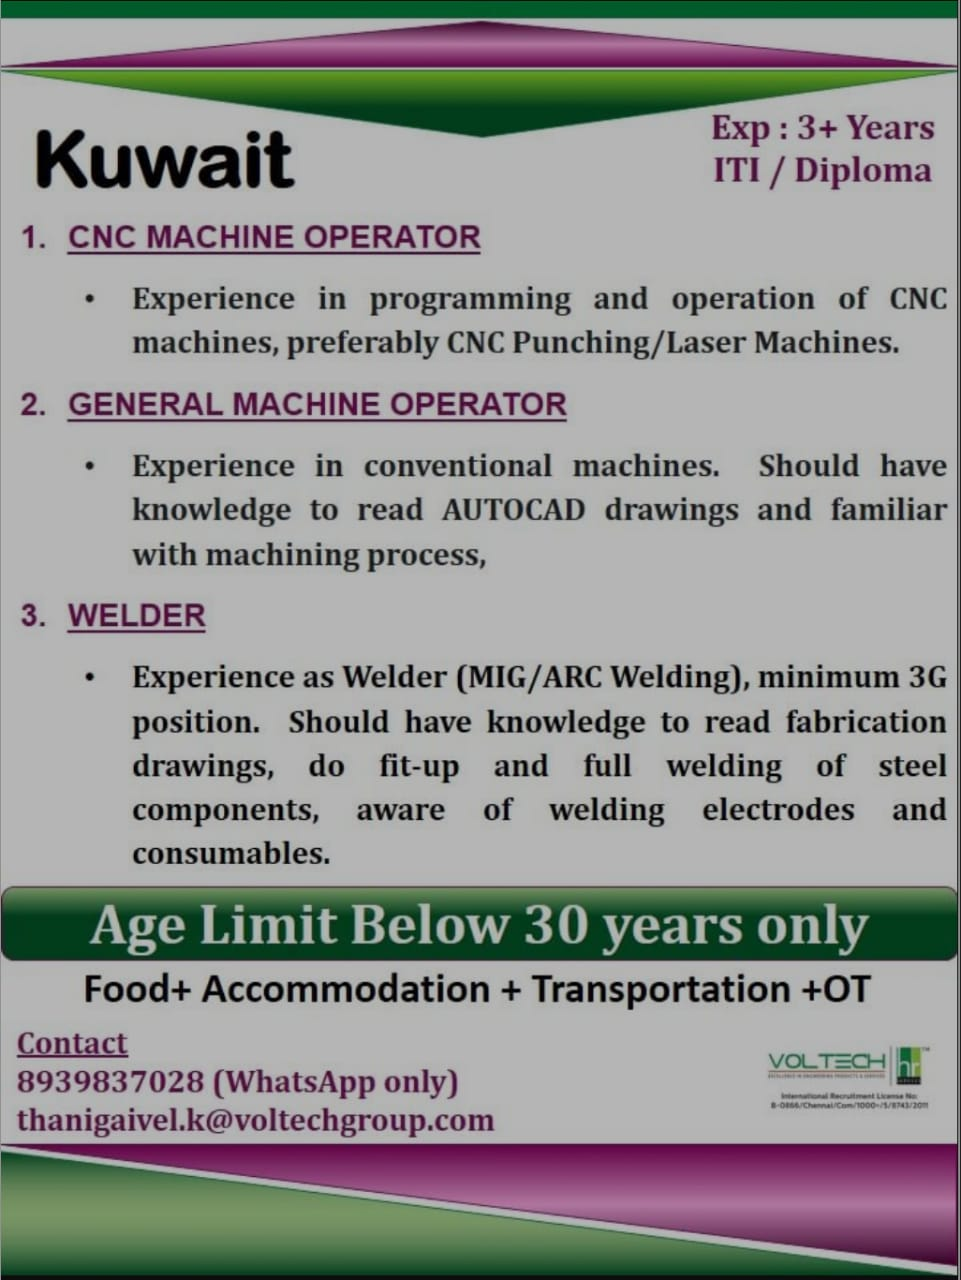 REQUIRED FOR A LEADING COMPANY-KUWAIT